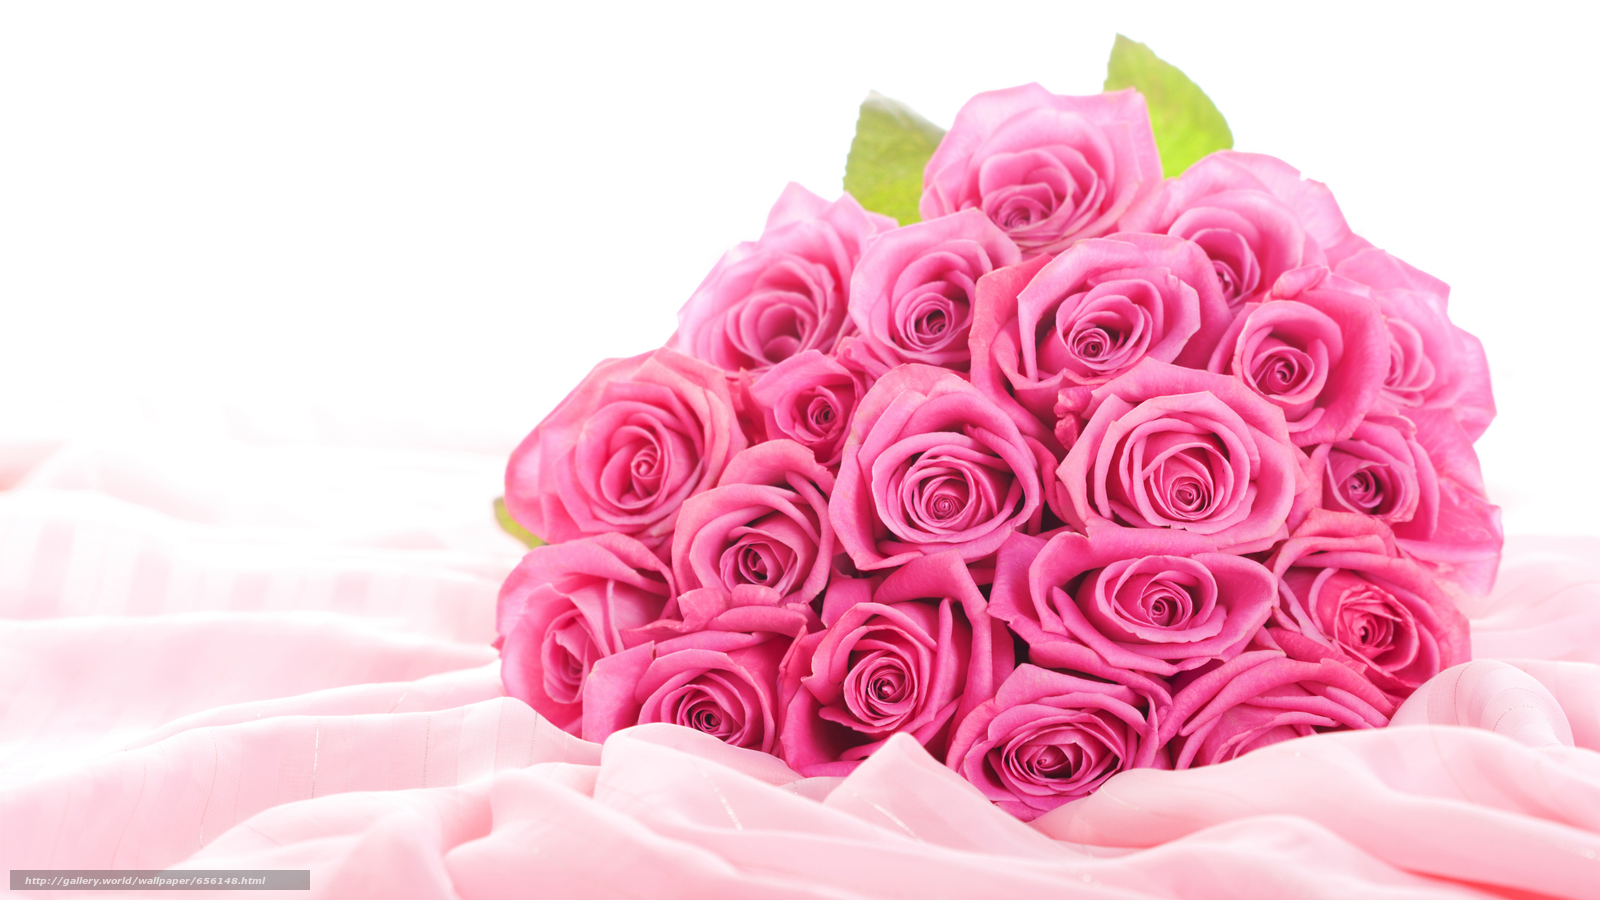 Download wallpaper Personas by Kisenok,  Roses,  pink,  Flowers free desktop wallpaper in the resolution 4752x2673 — picture №656148